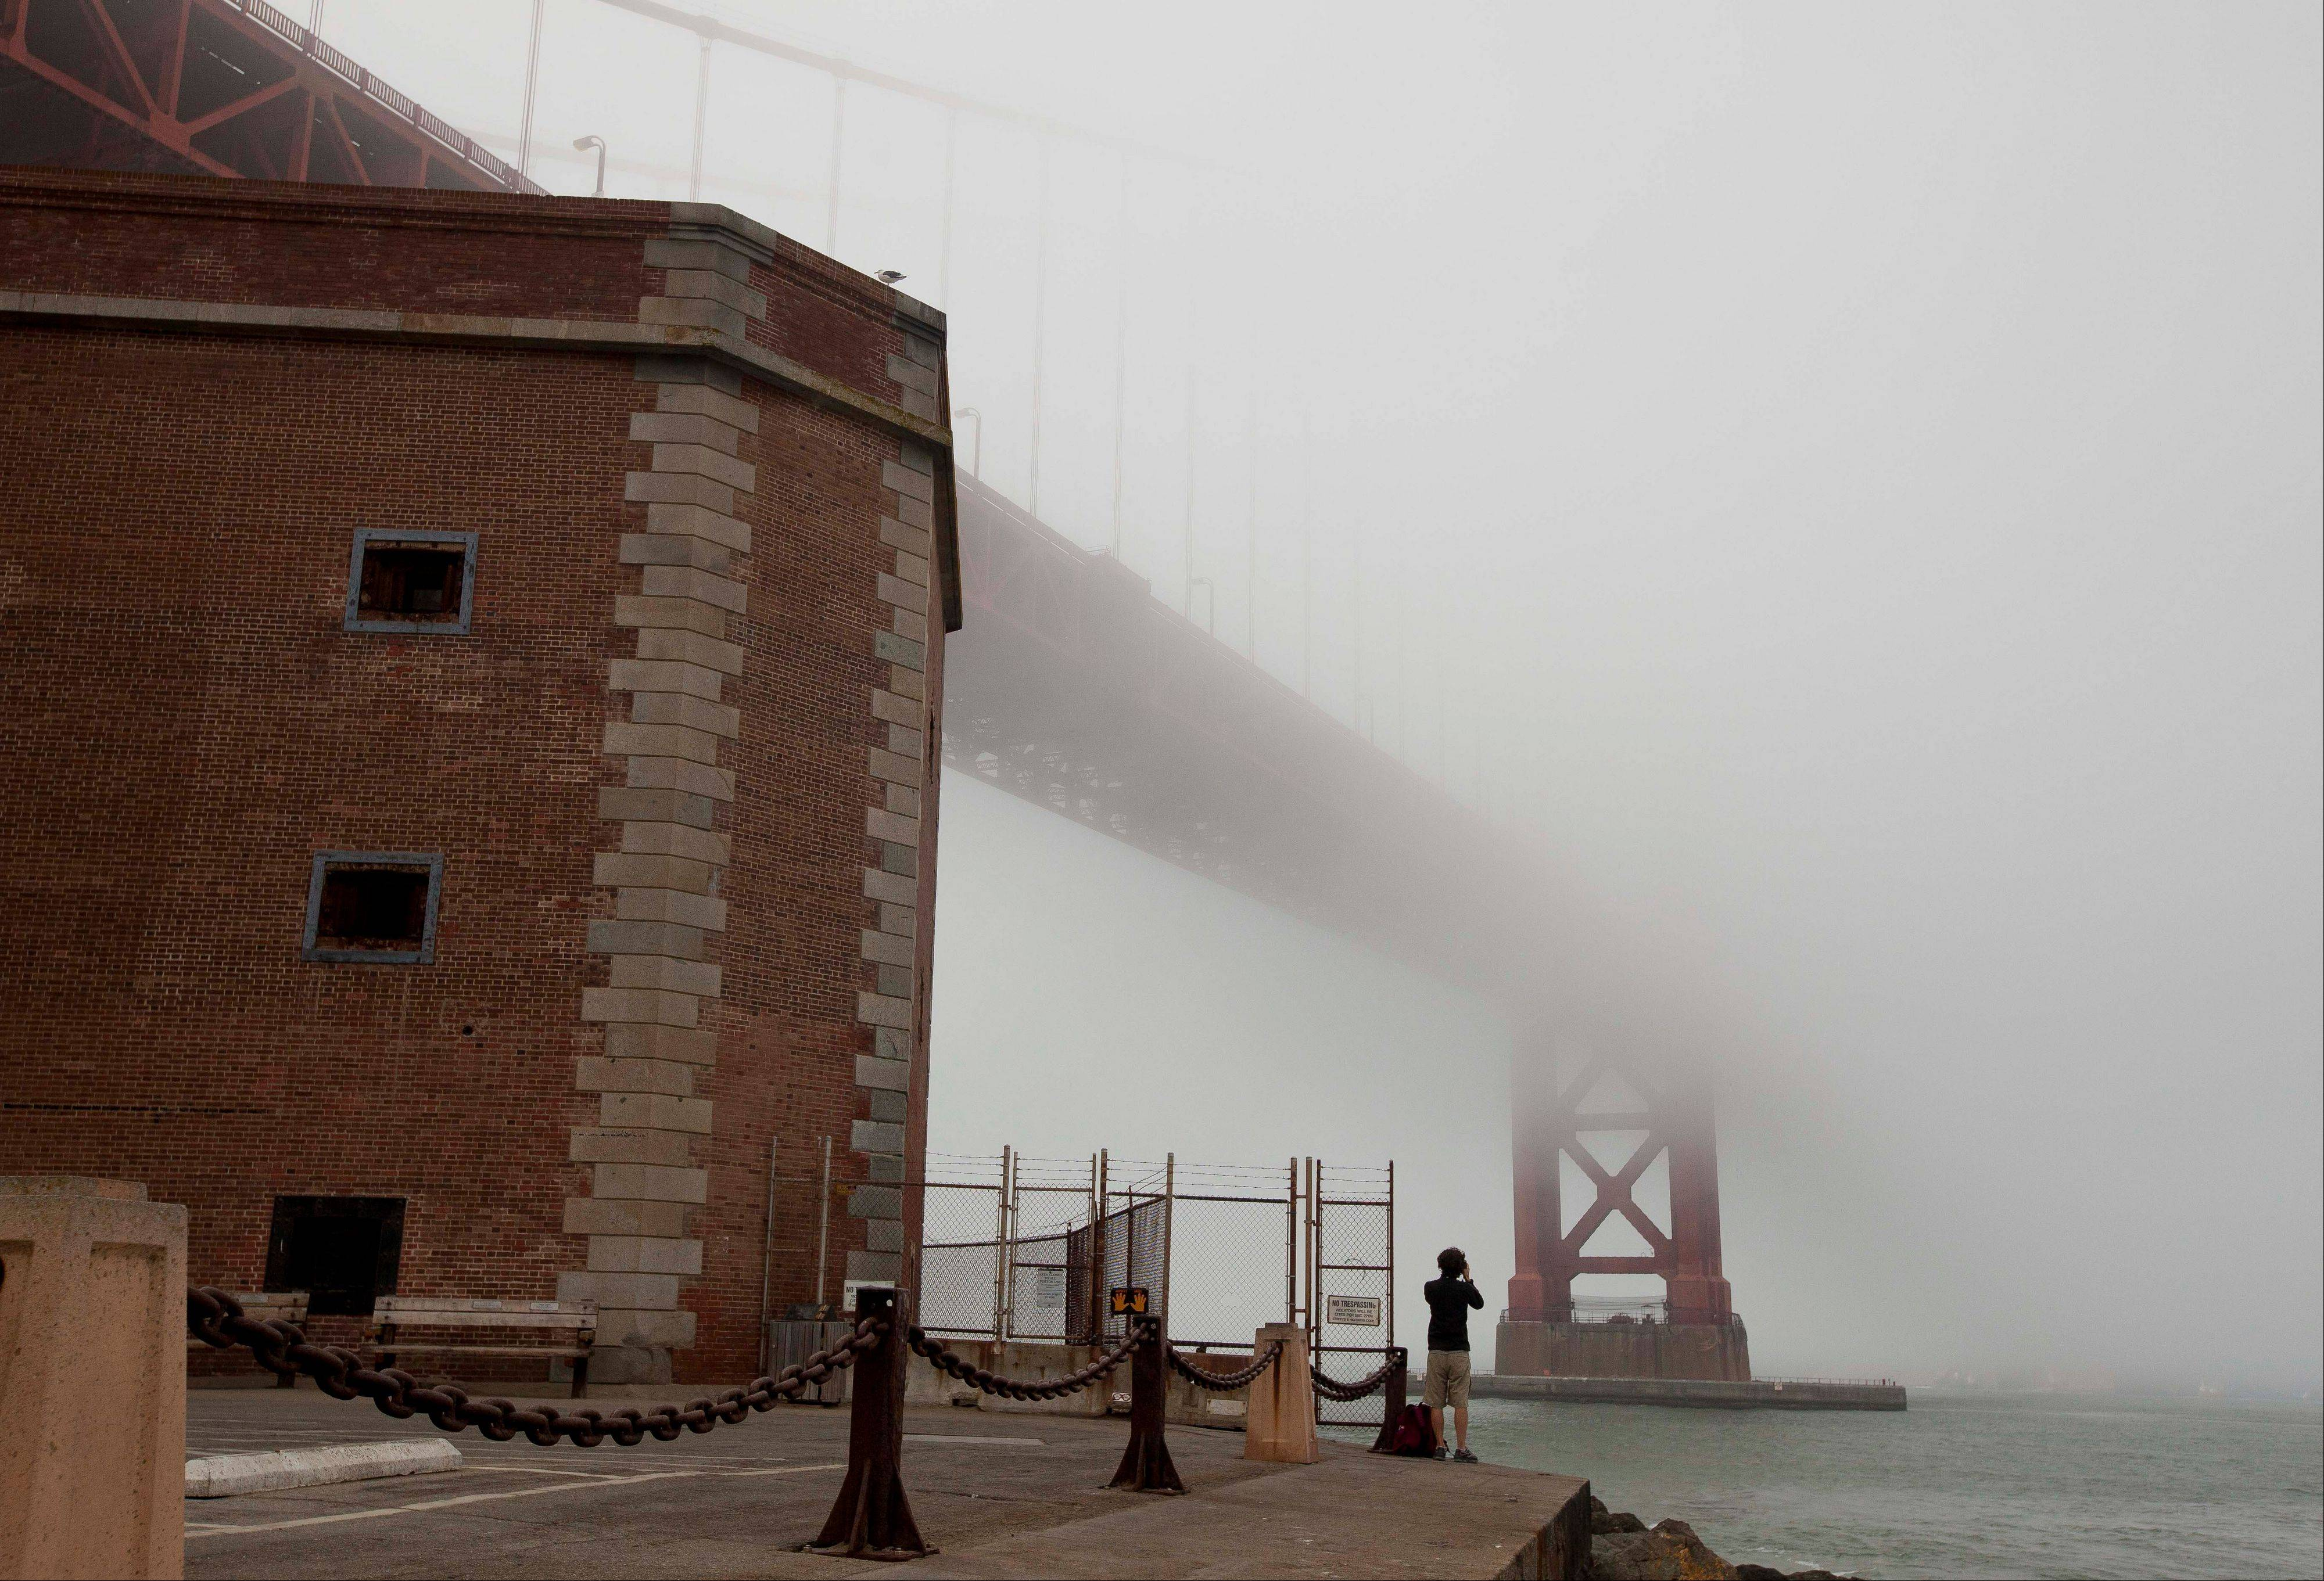 A man stands beside Fort Point and looks out at the fog-covered Golden Gate Bridge in San Francisco.